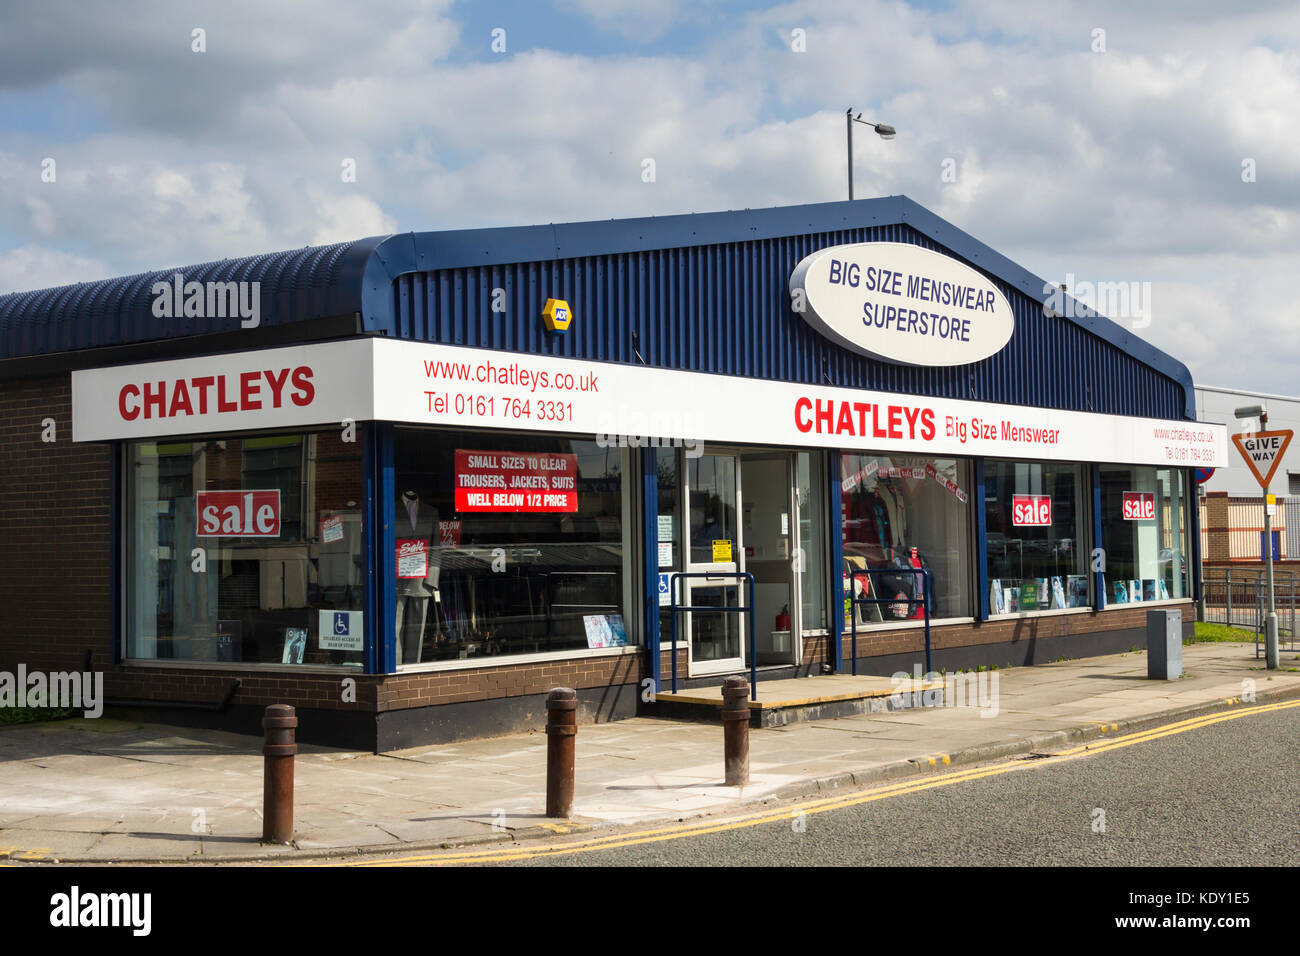 Chatleys big size menswear superstore, Bury, Greater Manchester. Chatleys specialise in men's clothing in larger Stock Photo